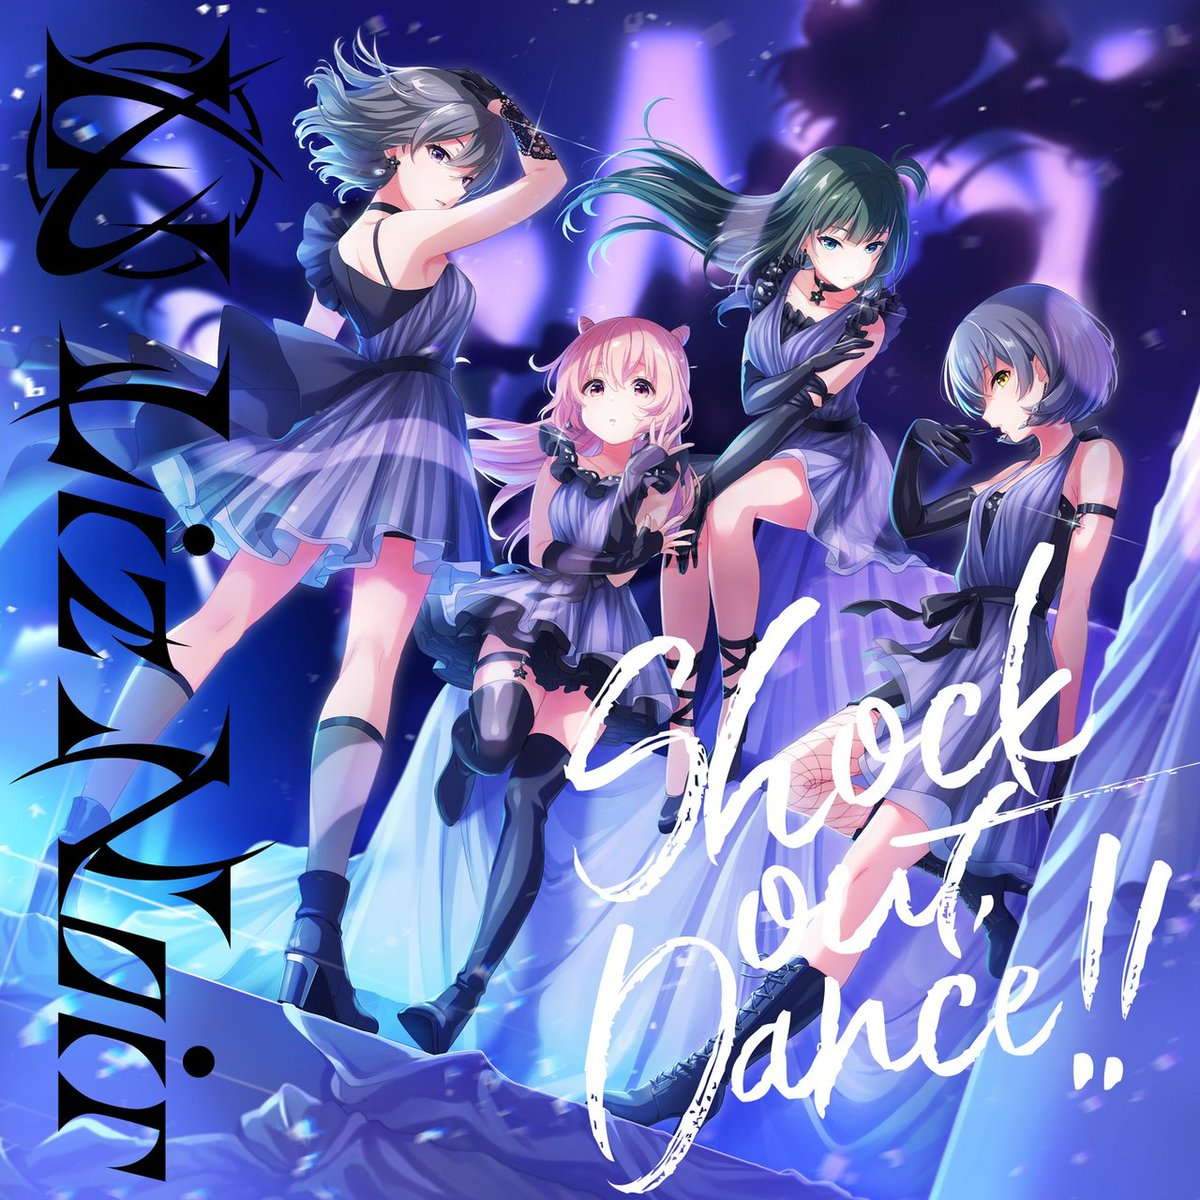 #nowplaying Shock out, Dance!! 44.1kHz/16bit by LizNoir on #pioneer #XDP_300R